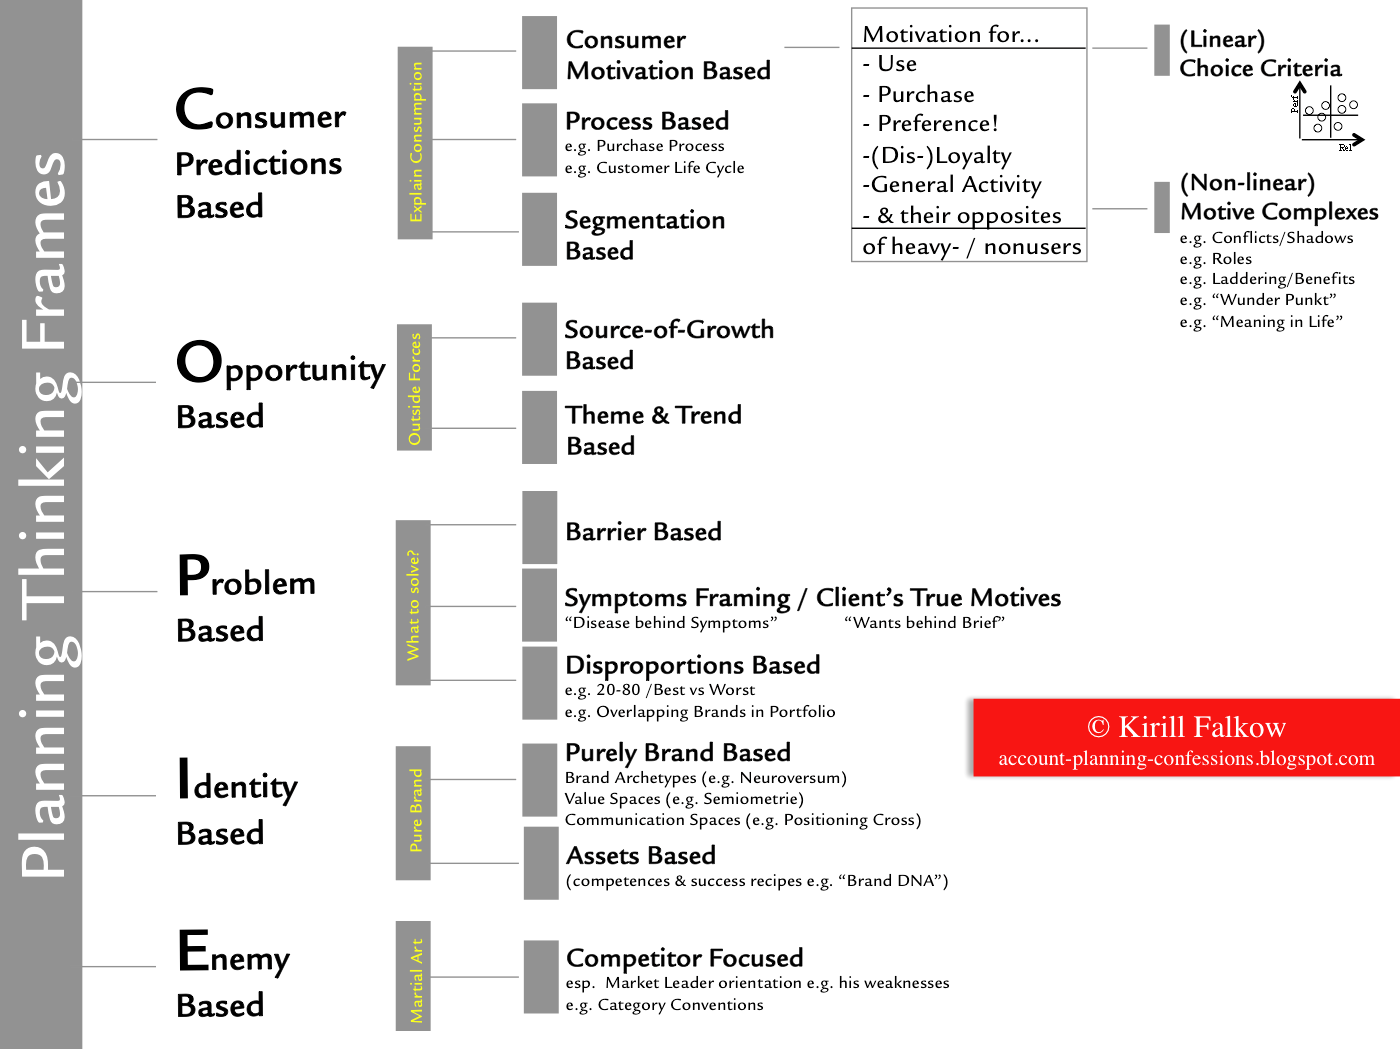 1000+ images about Account Planning on Pinterest | Advertising ...